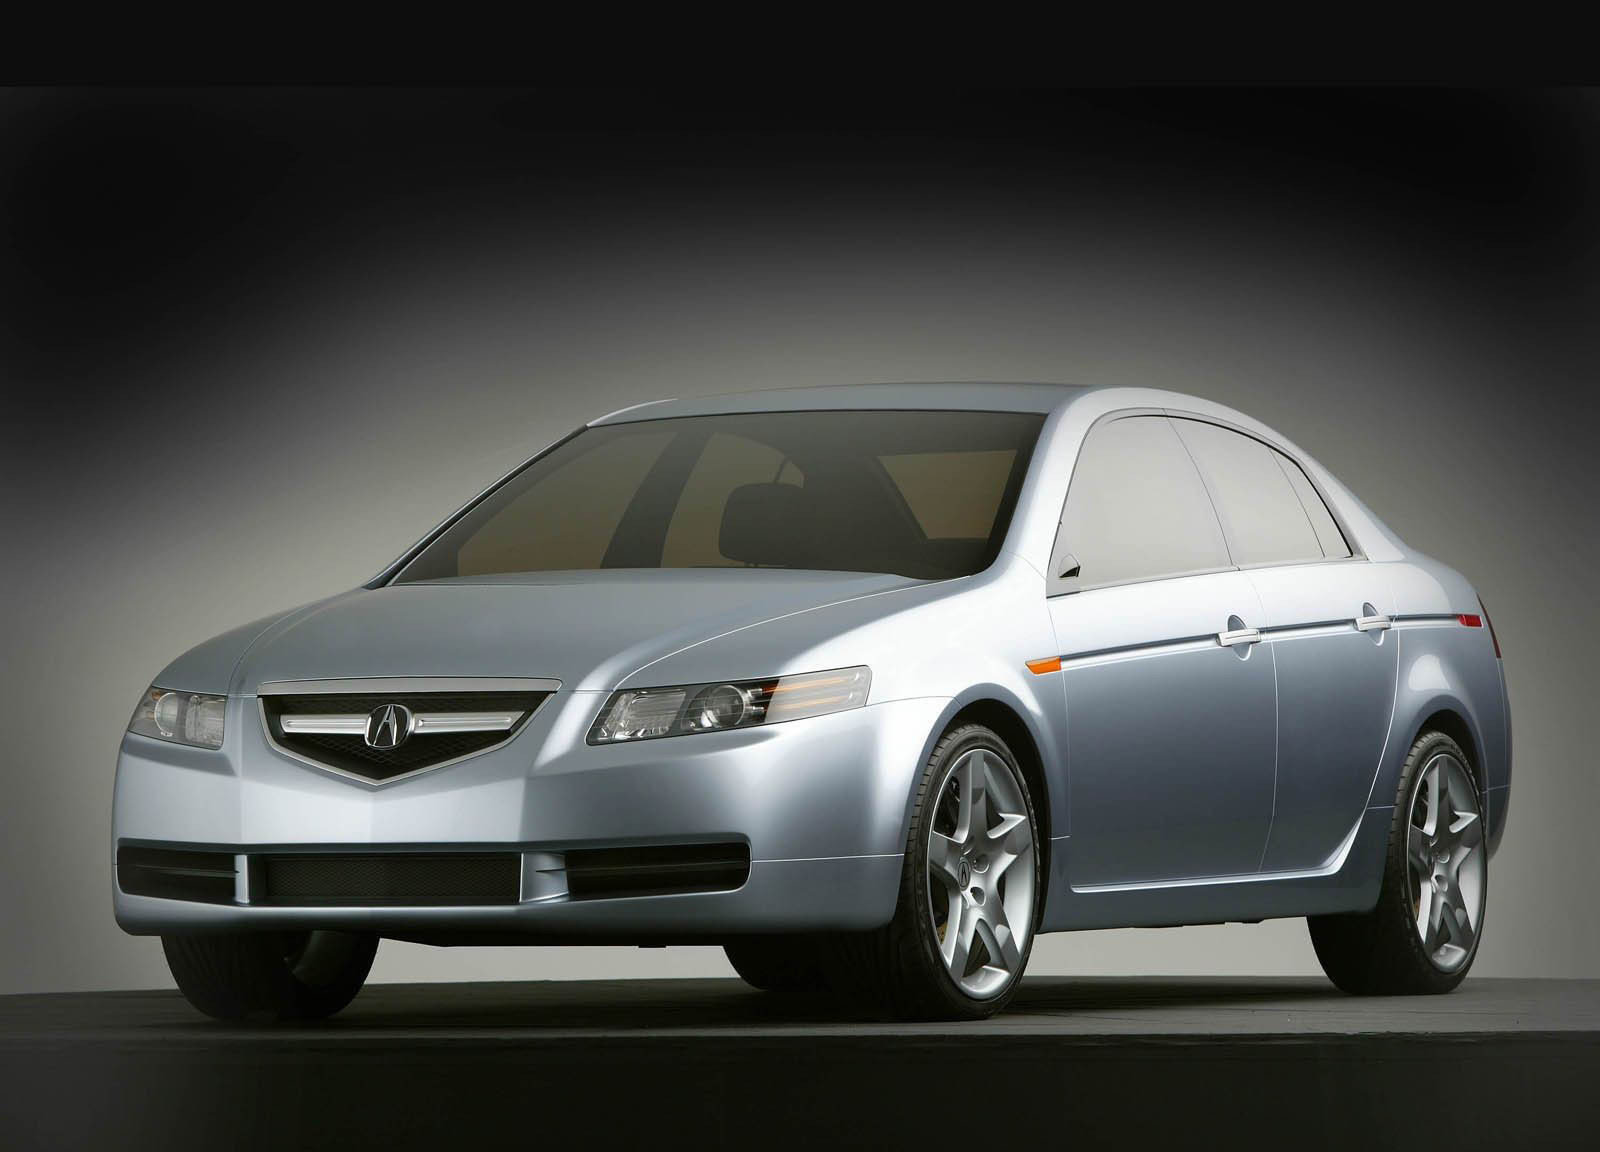 1996 acura tl picture 164 car review top speed. Black Bedroom Furniture Sets. Home Design Ideas